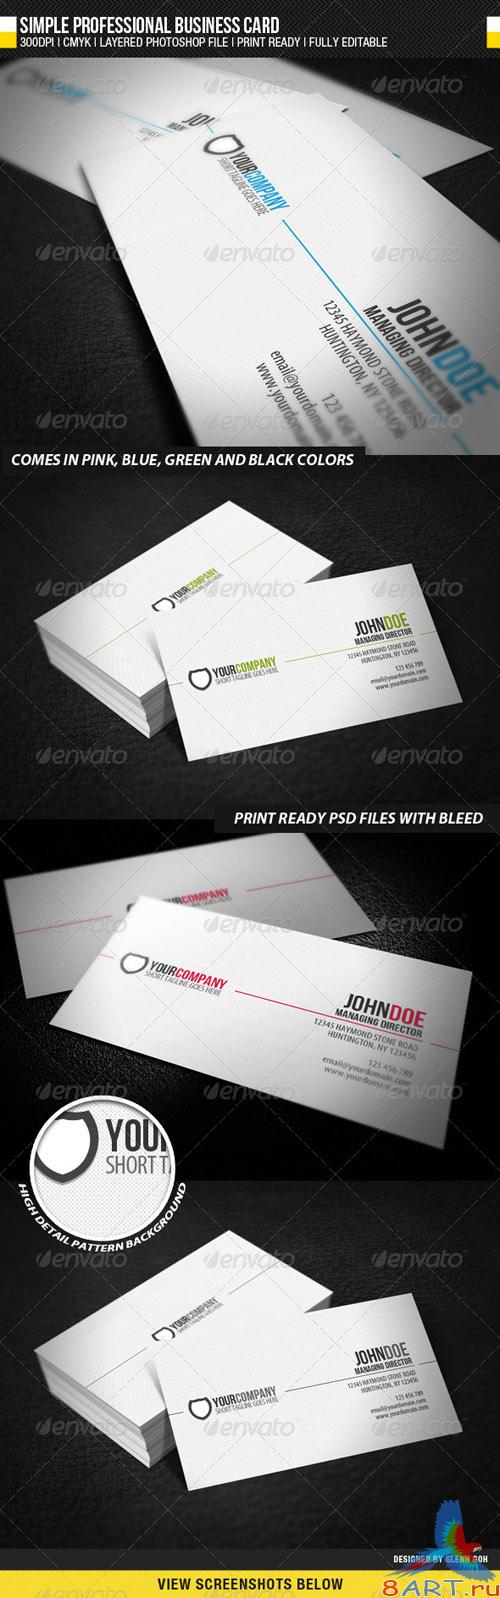 GraphicRiver Simple Professional Business Card - REUPLOAD